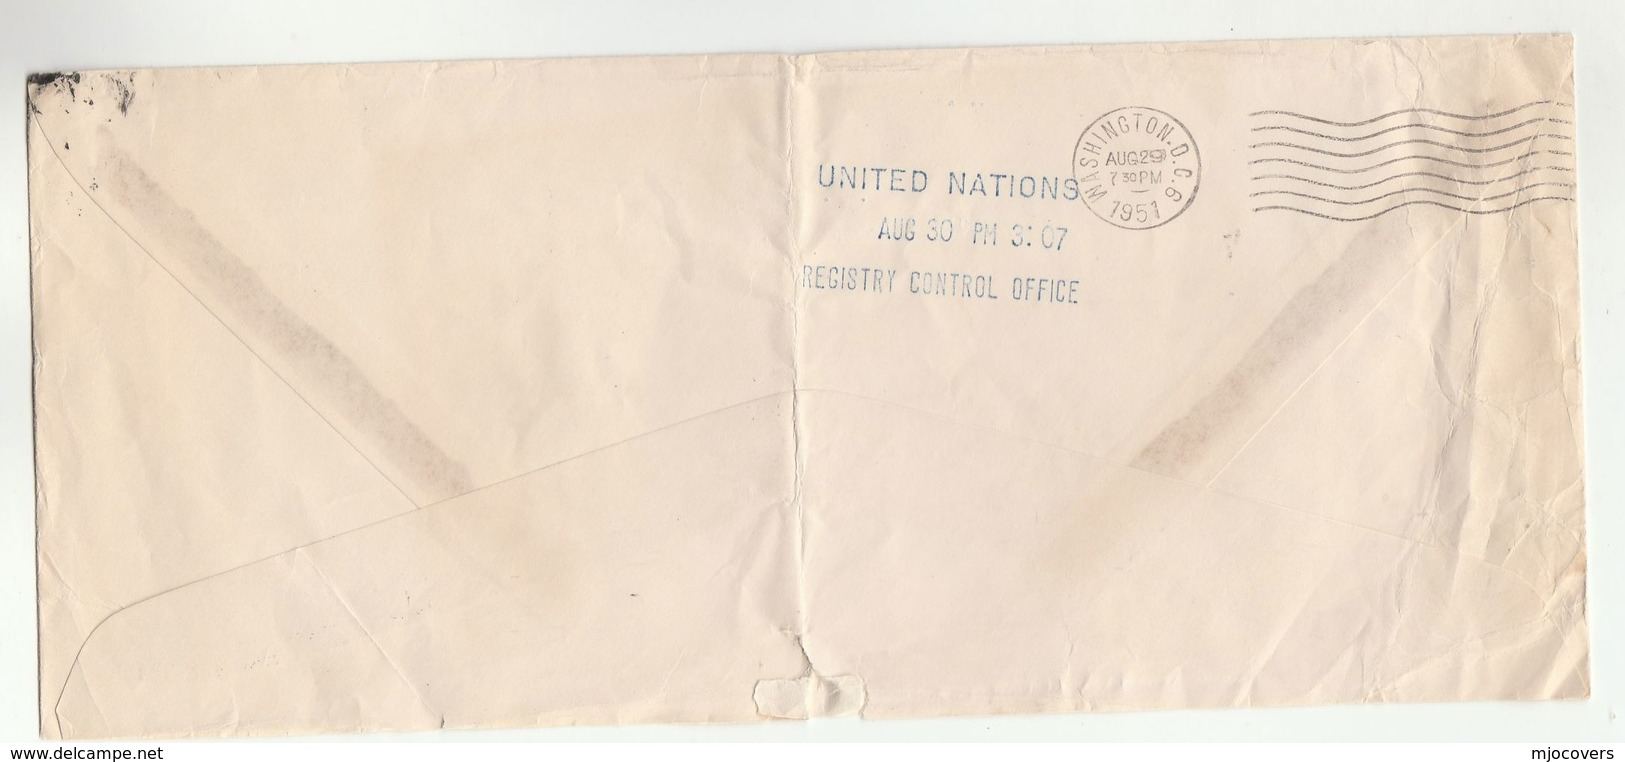 1951 US CONGRESS COMMITTEE On REDUCTION Of NON ESSENTIAL FEDERAL EXPENSES Cover To UNITED NATIONS Un Usa - UNO